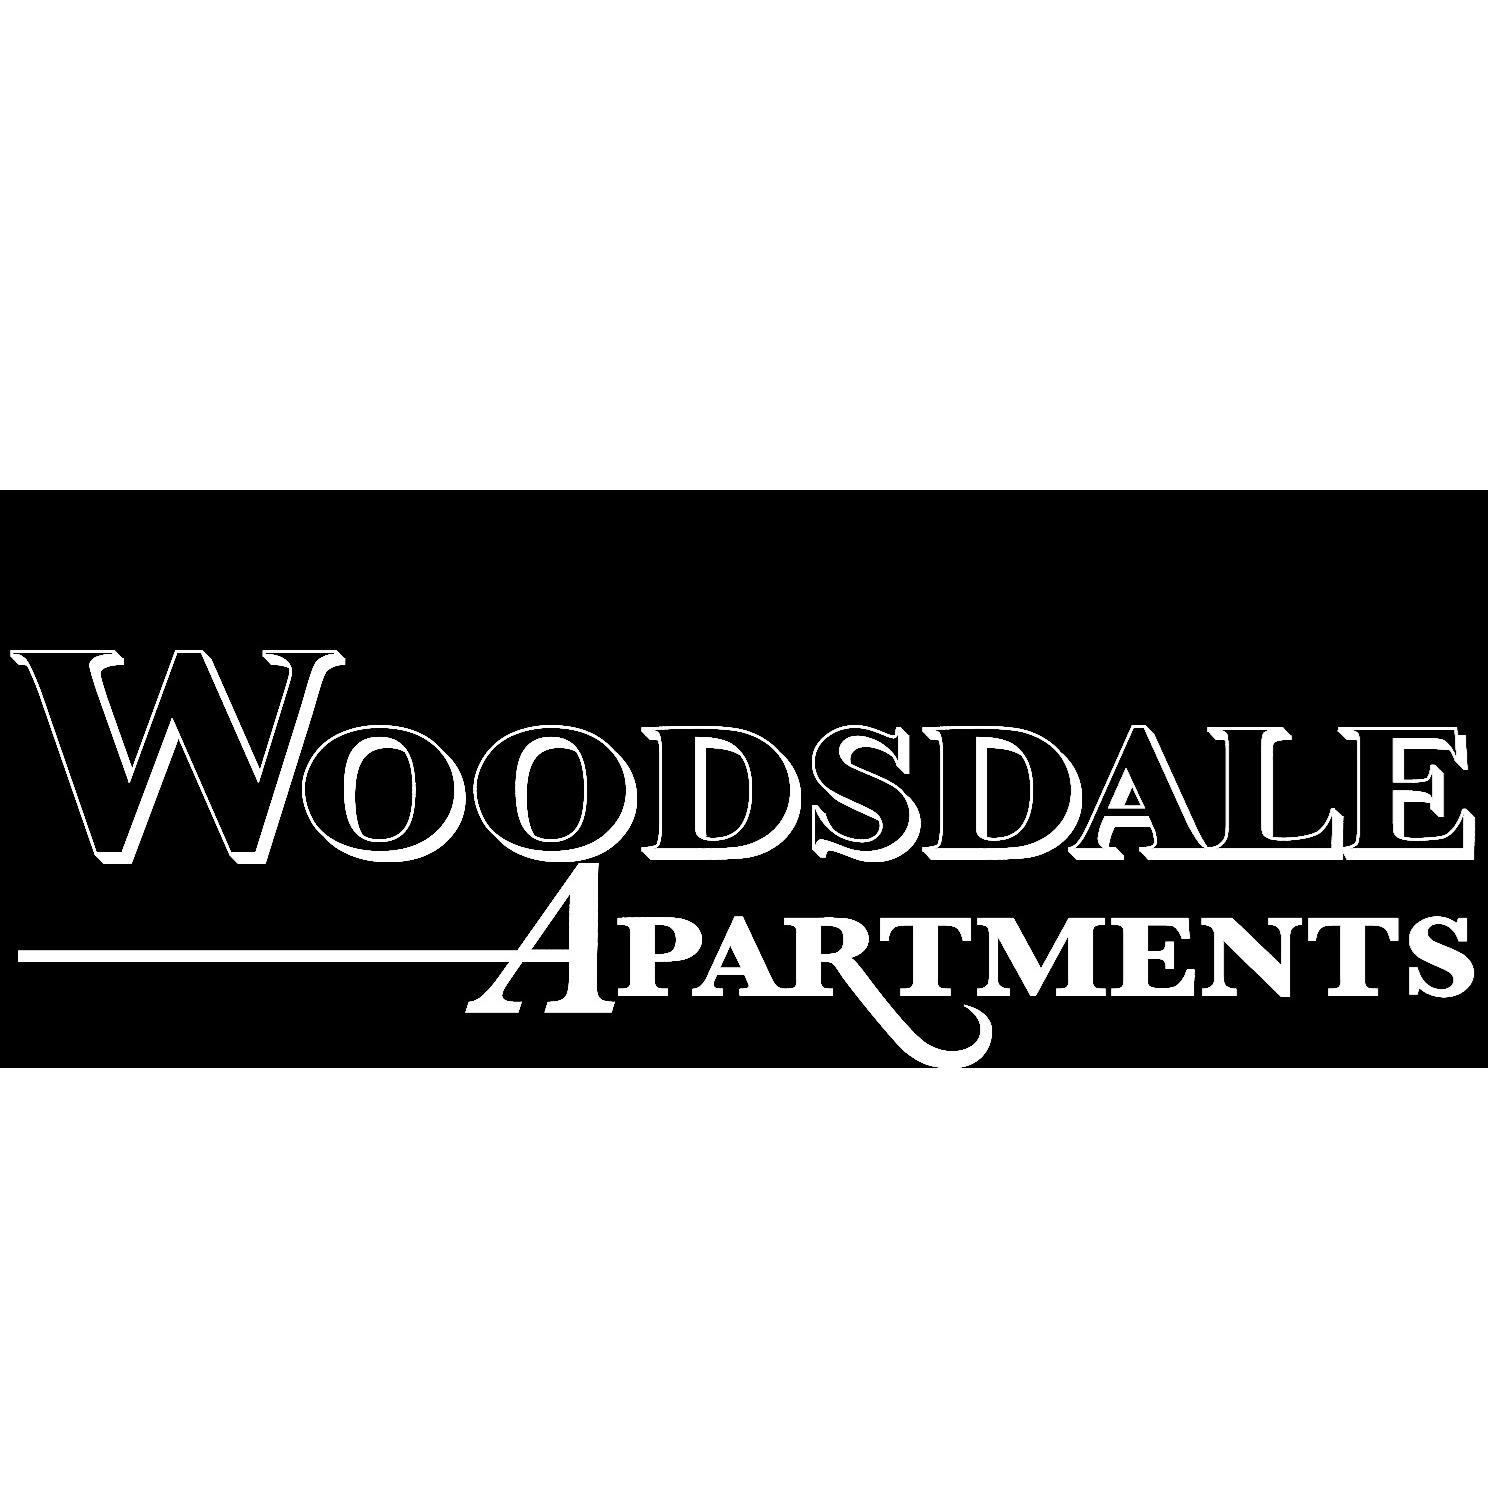 Woodsdale apartments abingdon maryland insider pages for Abingdon swimming pool opening times